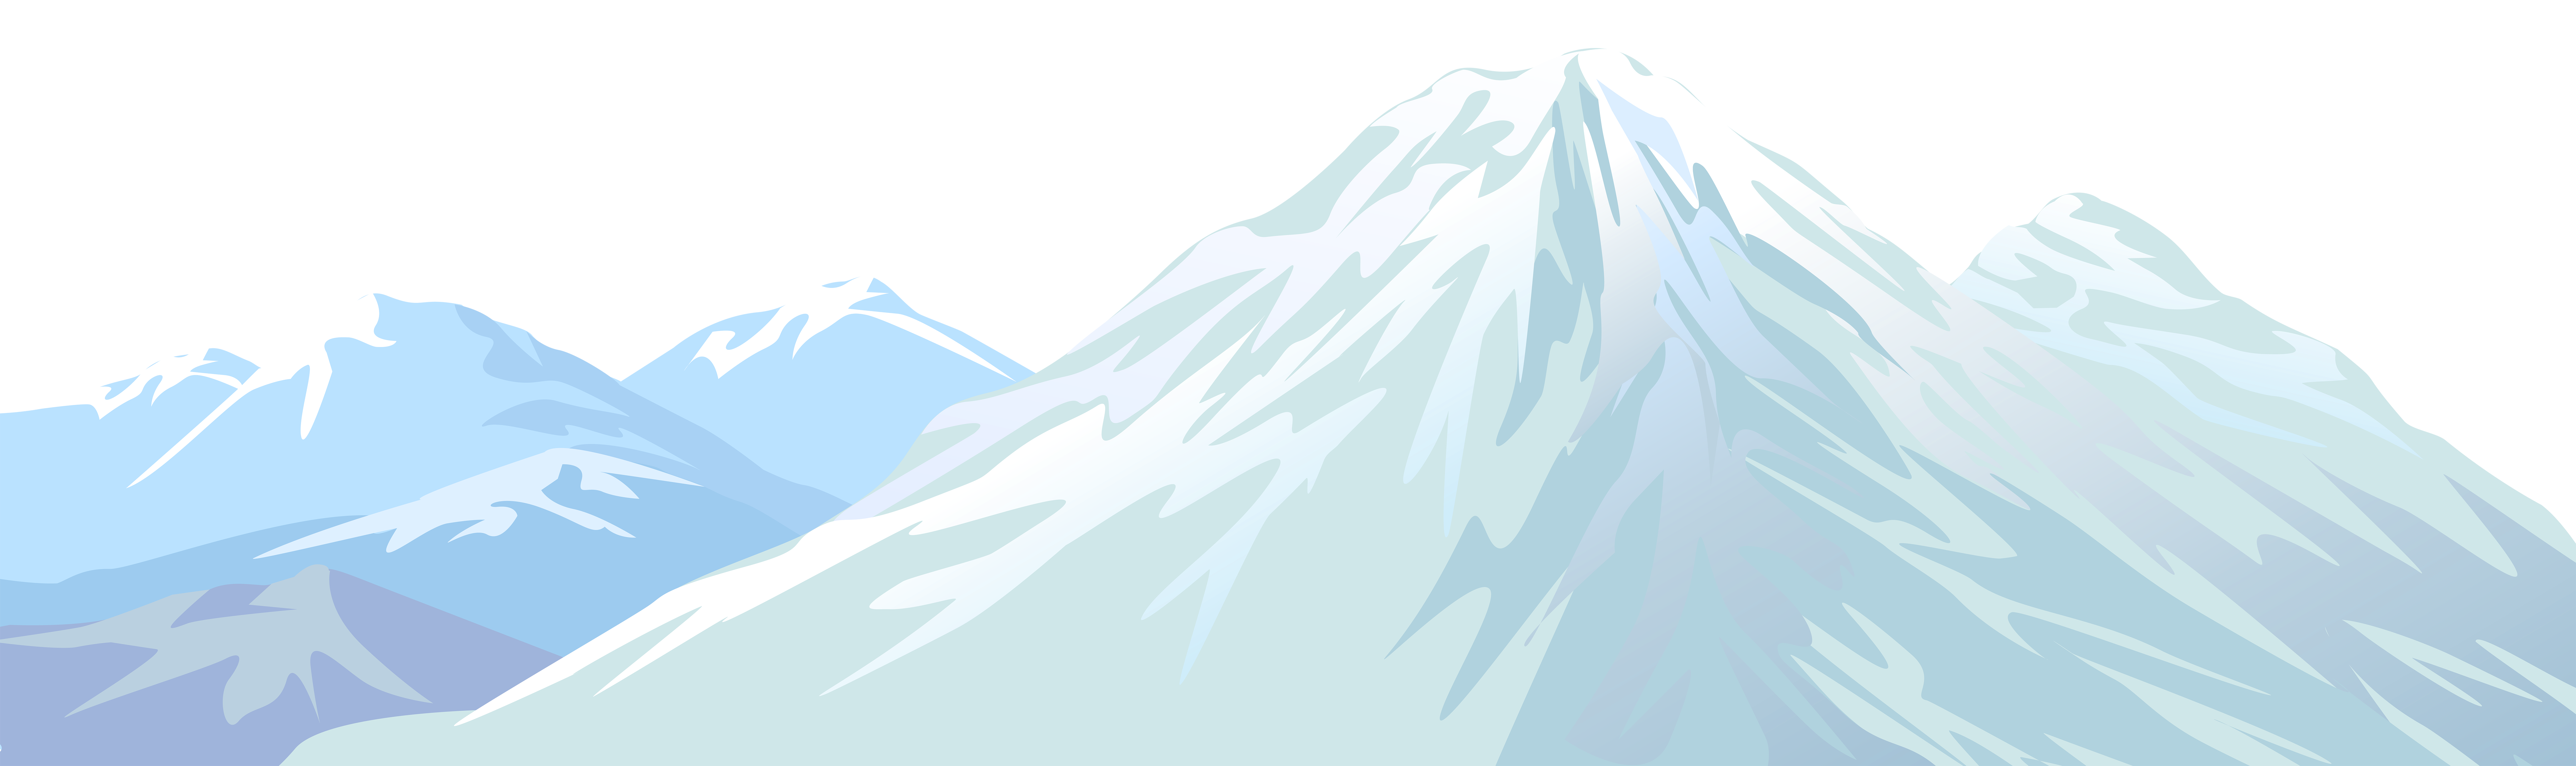 Winter Snowy Mountain Transparent Png Clip Art Image Gallery Yopriceville High Quality Images And Transparent Png Free Art Images Clip Art Snowy Mountains